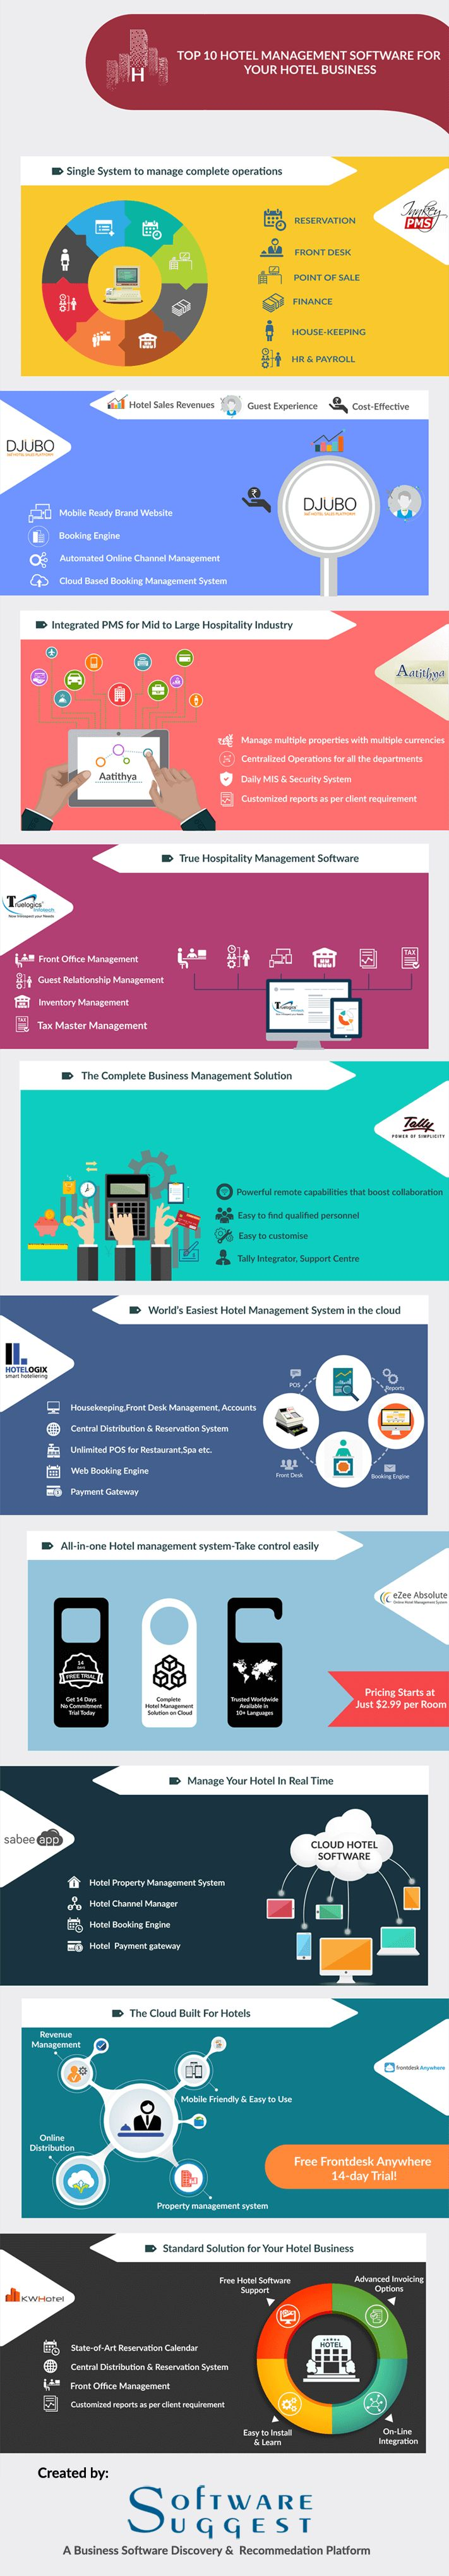 Are you running a hotel business? Great!! Explore here top 10 #hotel #softwares & extend your reach to more potential customers. @ezeetech